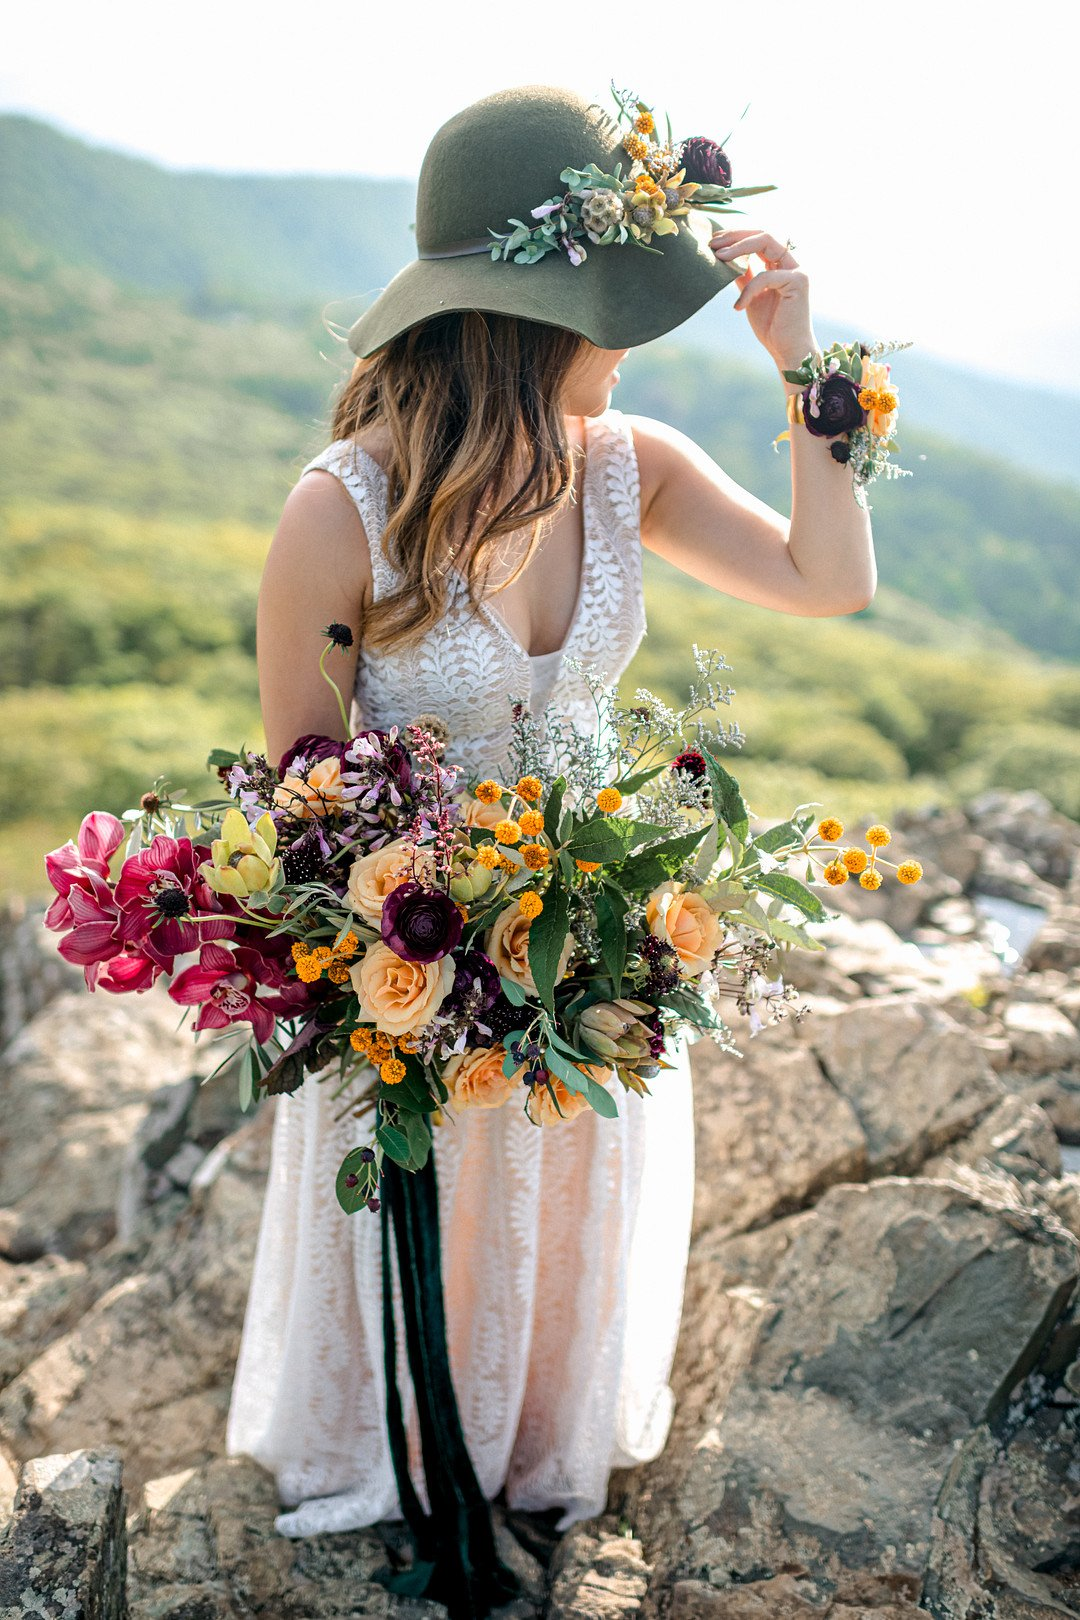 Boho Mountain Elopement in Shenandoah National Park_1001 Angles Photography_Shenandoah National Park Adventure Elopement-70_low